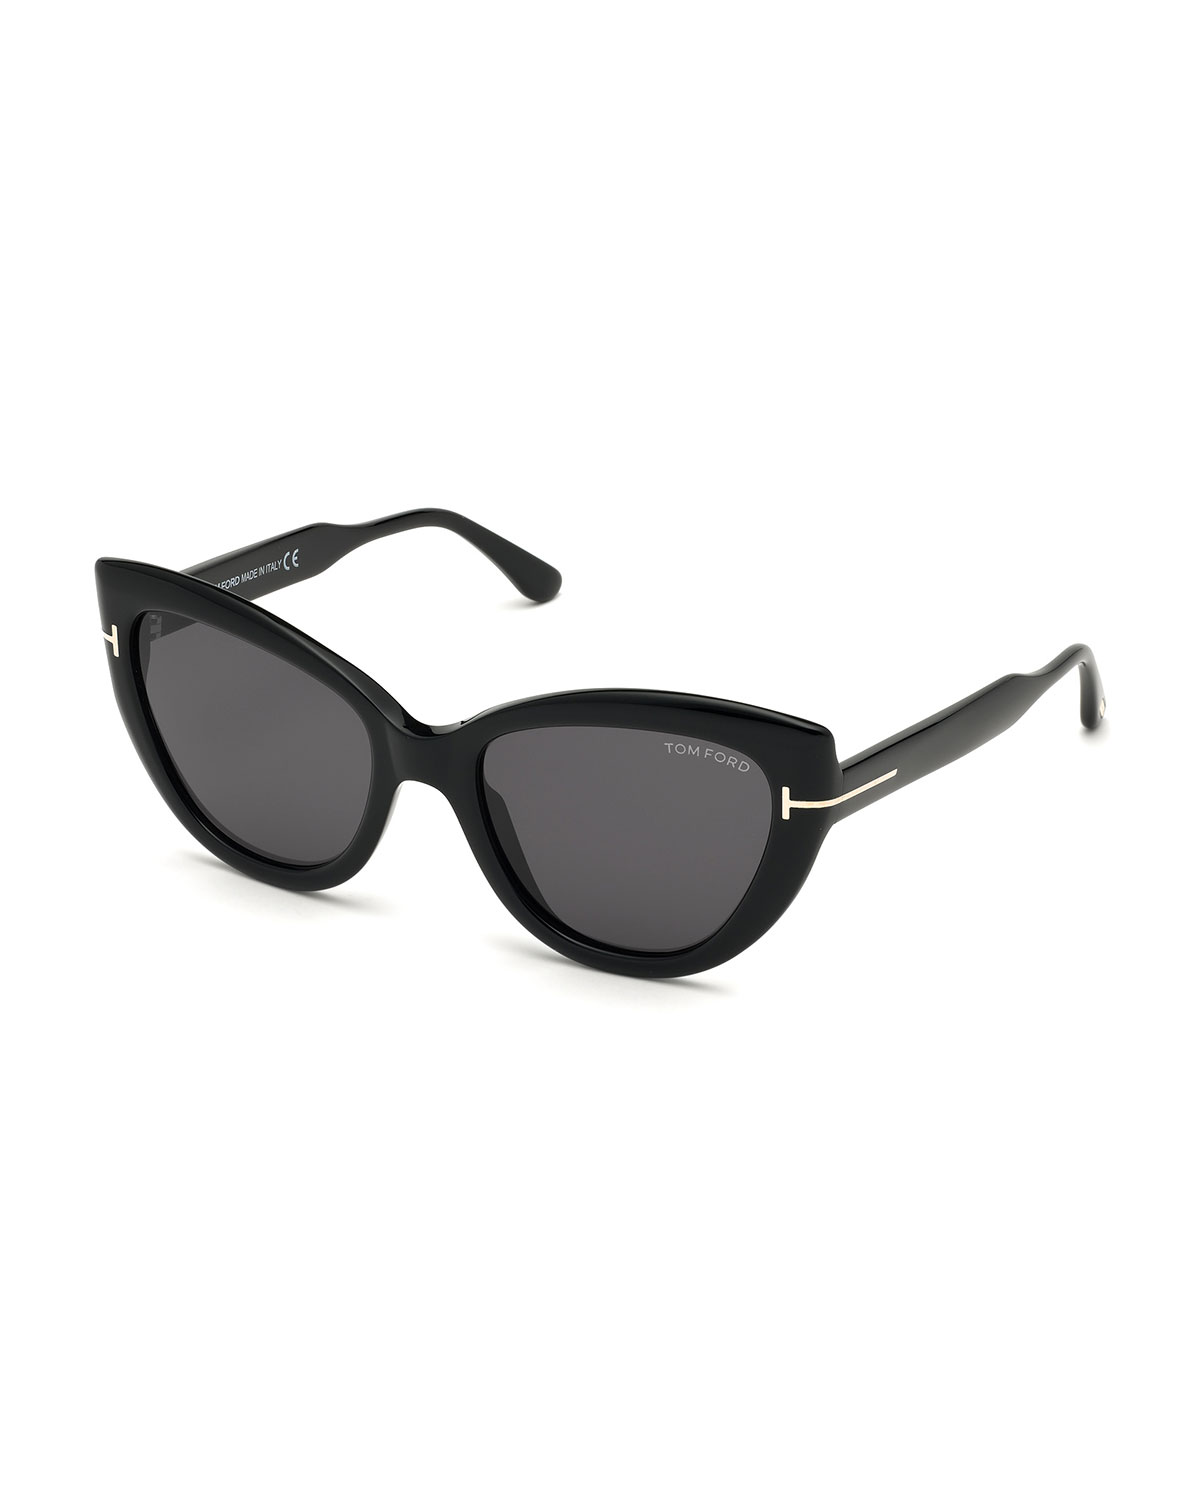 TOM FORD Anya Cat-Eye Polarized Sunglasses